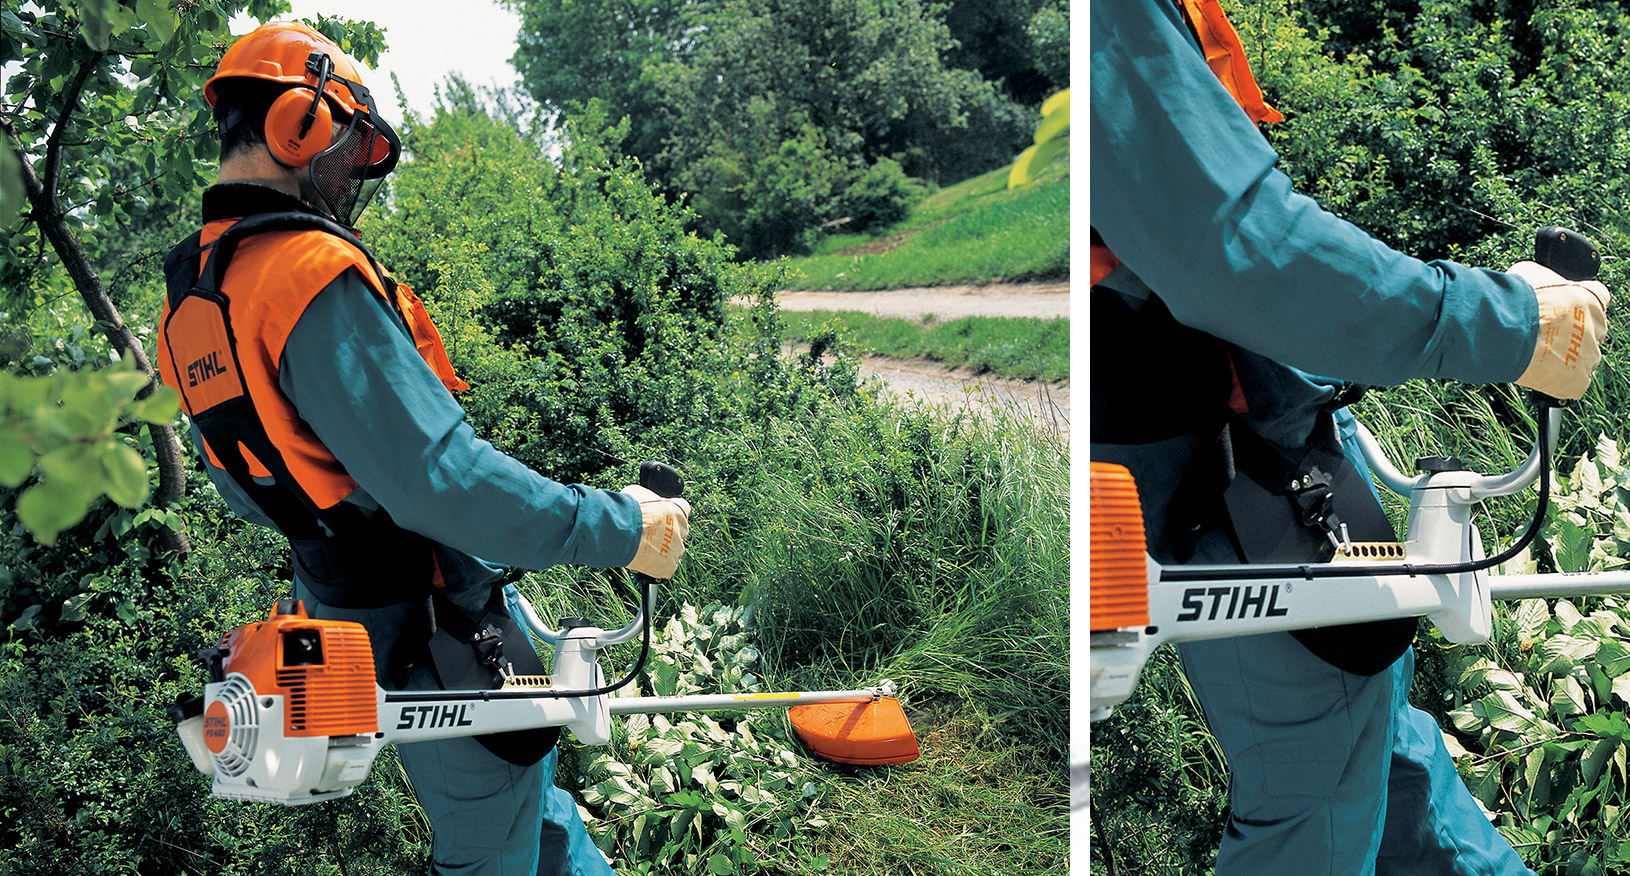 Small Brush Cutter/Strimmer